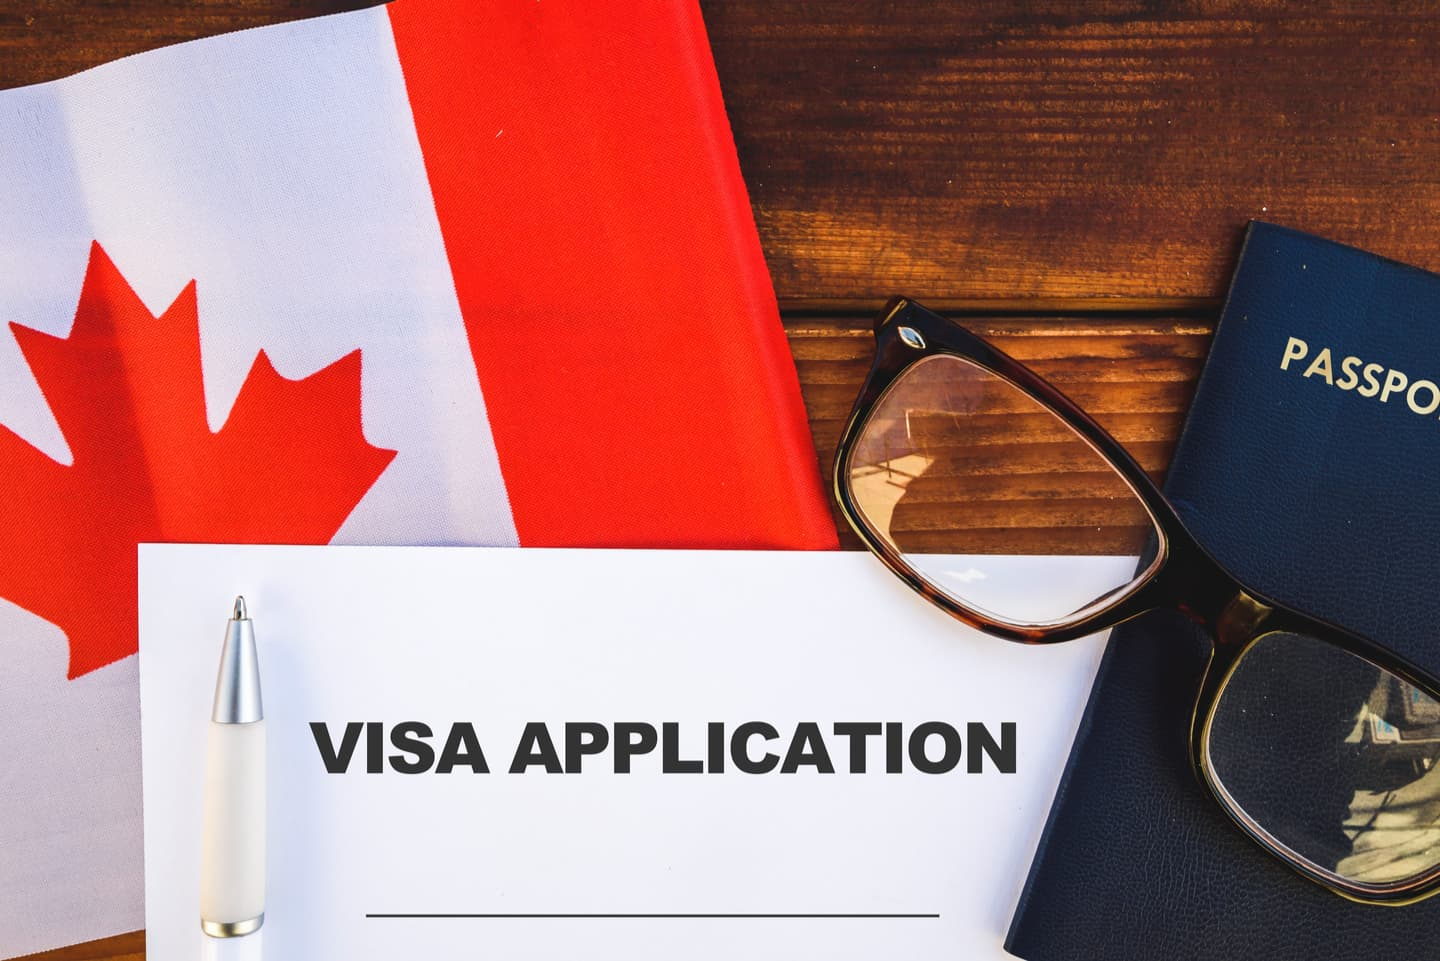 Visa application with Canadian flag and passport in background